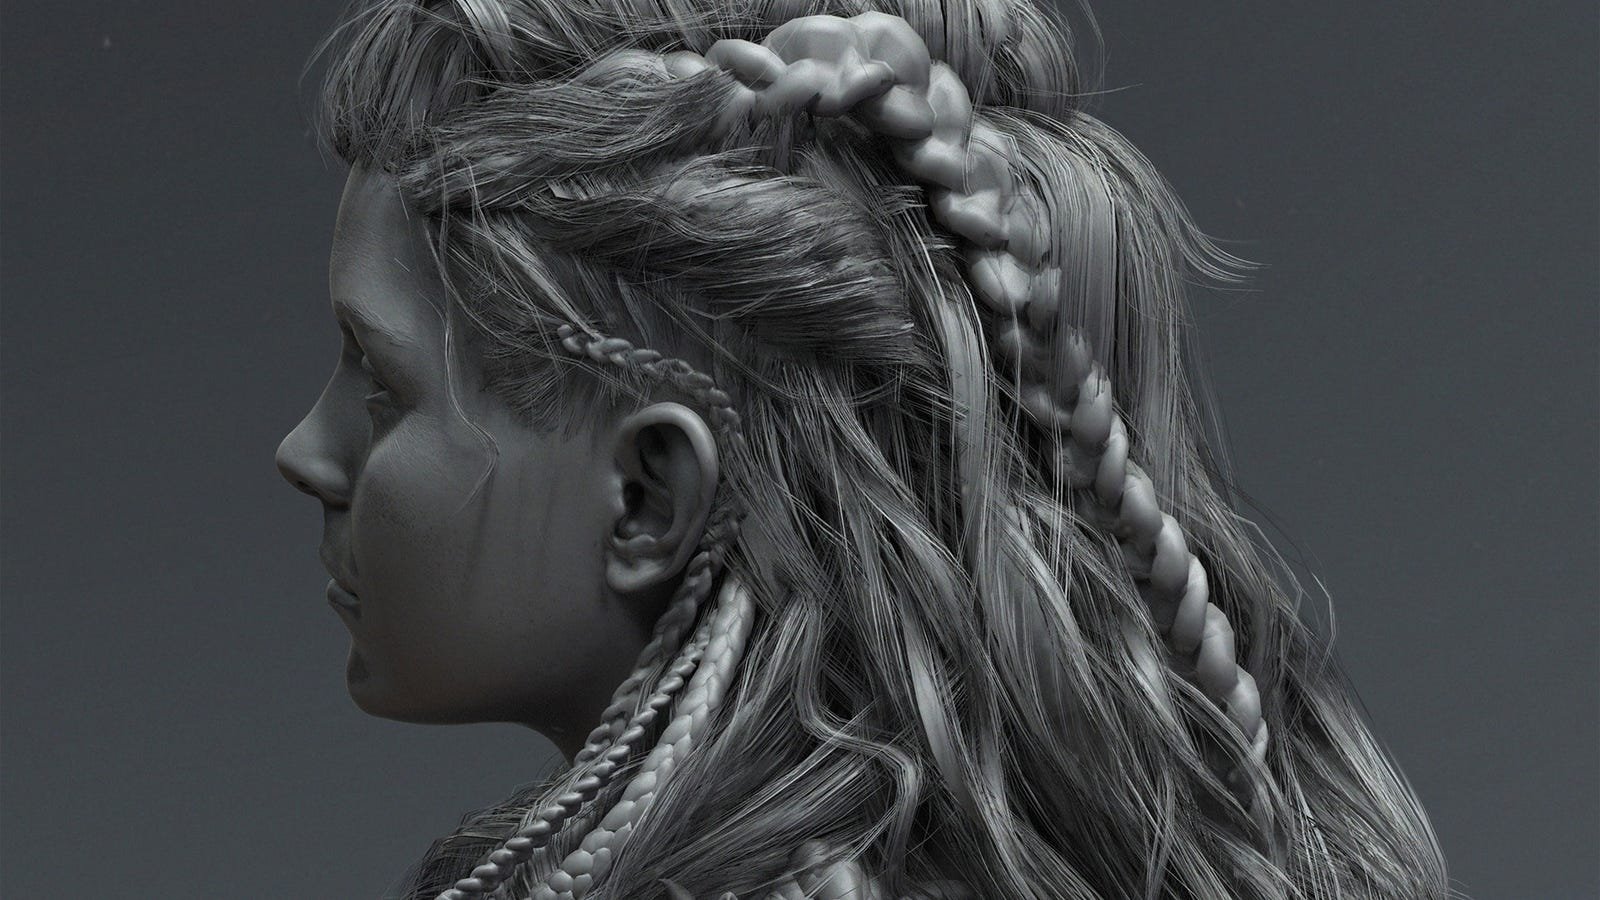 Lets Appreciate This Fine Video Game Hair